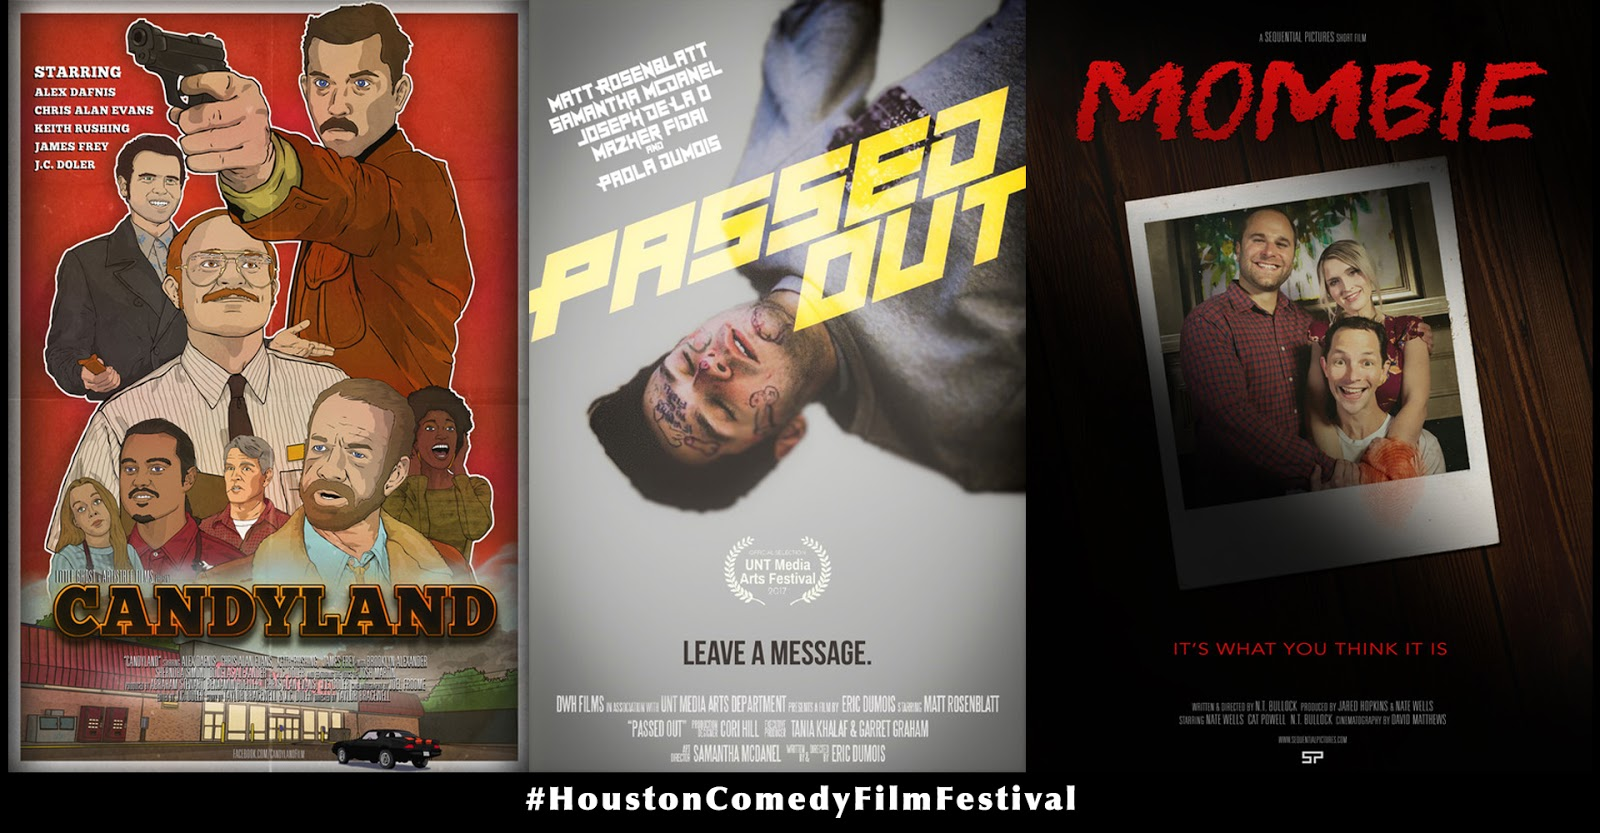 All Comedy Movies In 2009 houston comedy film festival submissions are now open!